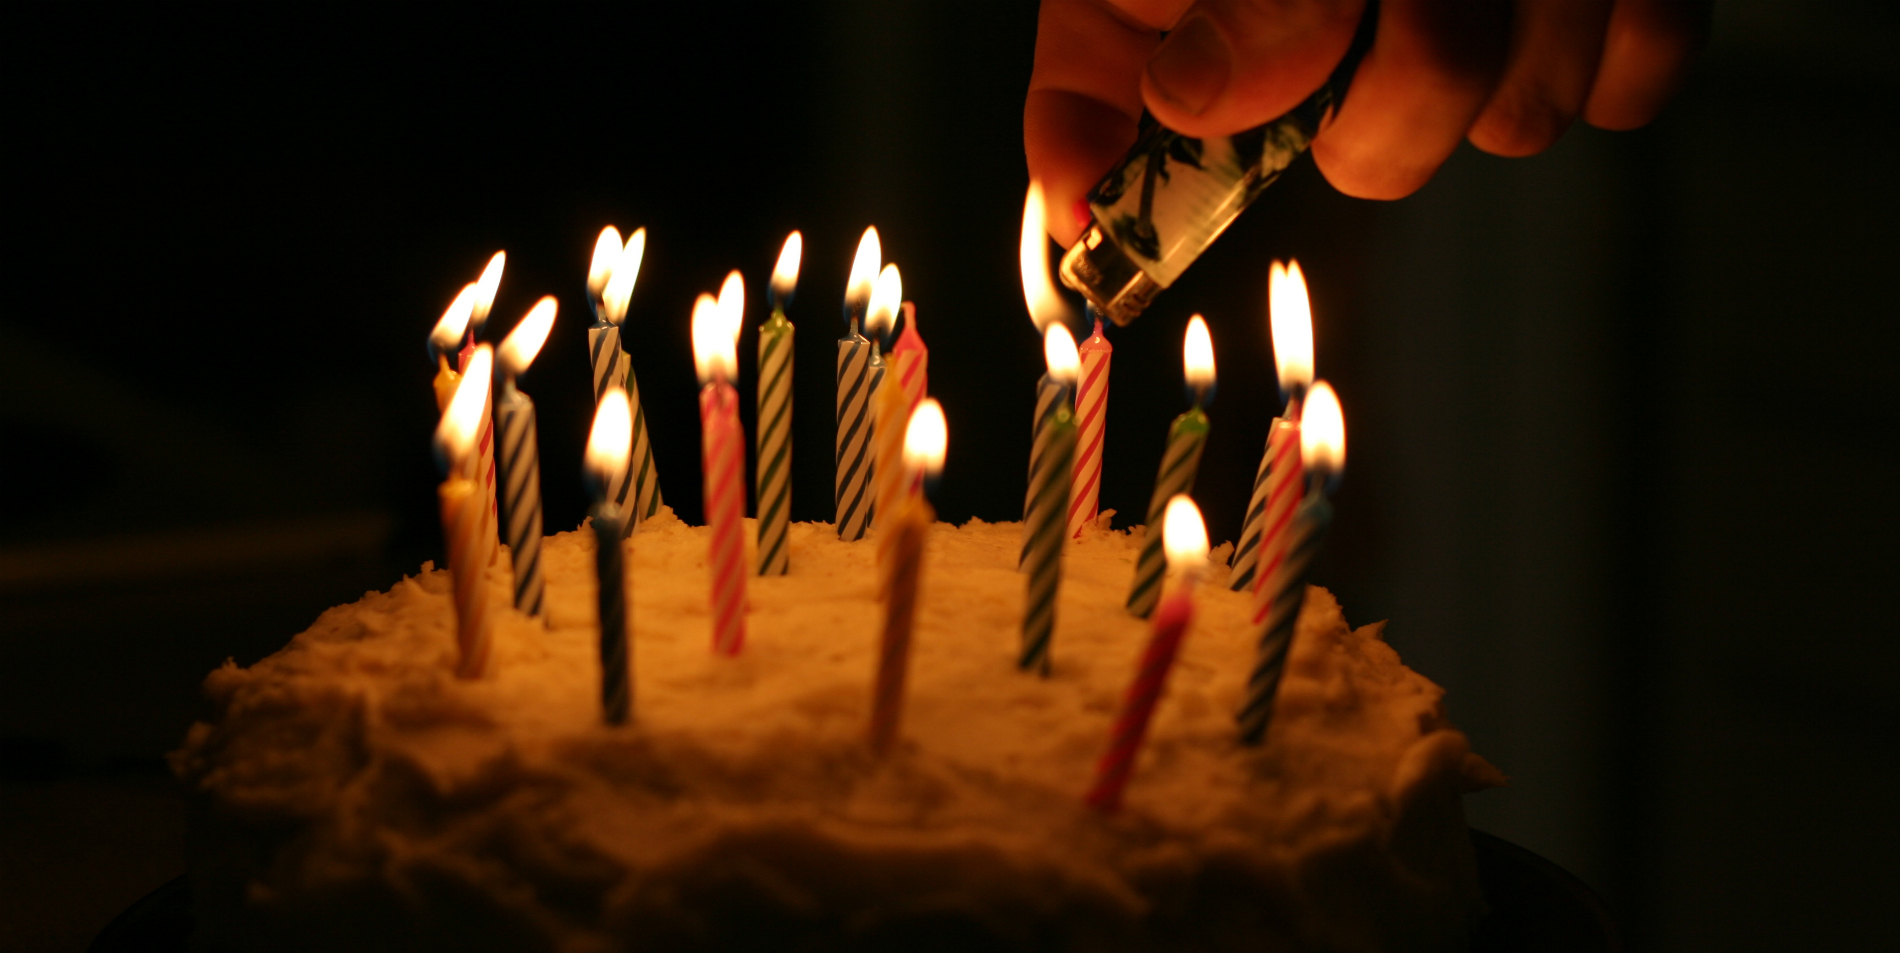 Freak Accident With Birthday Cake Candles Kills 13 In France Munchies